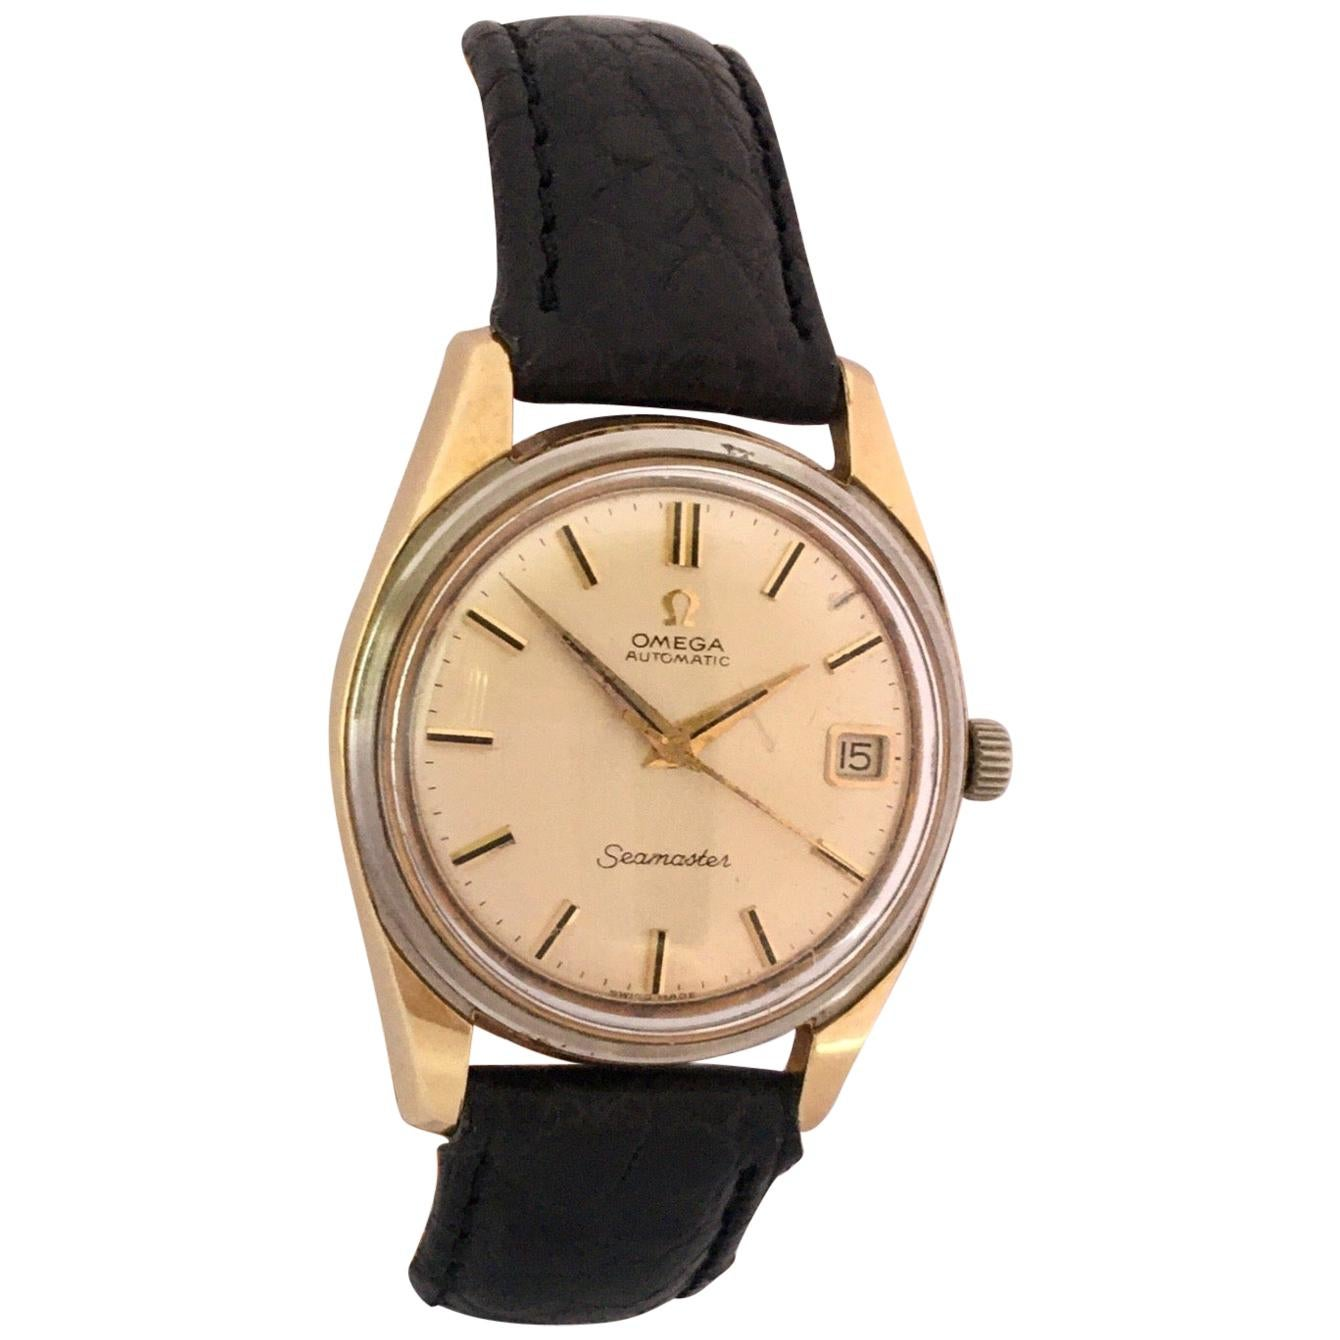 1960s Gold-Plated and Stainless Steel Omega Seamaster Automatic Wristwatch